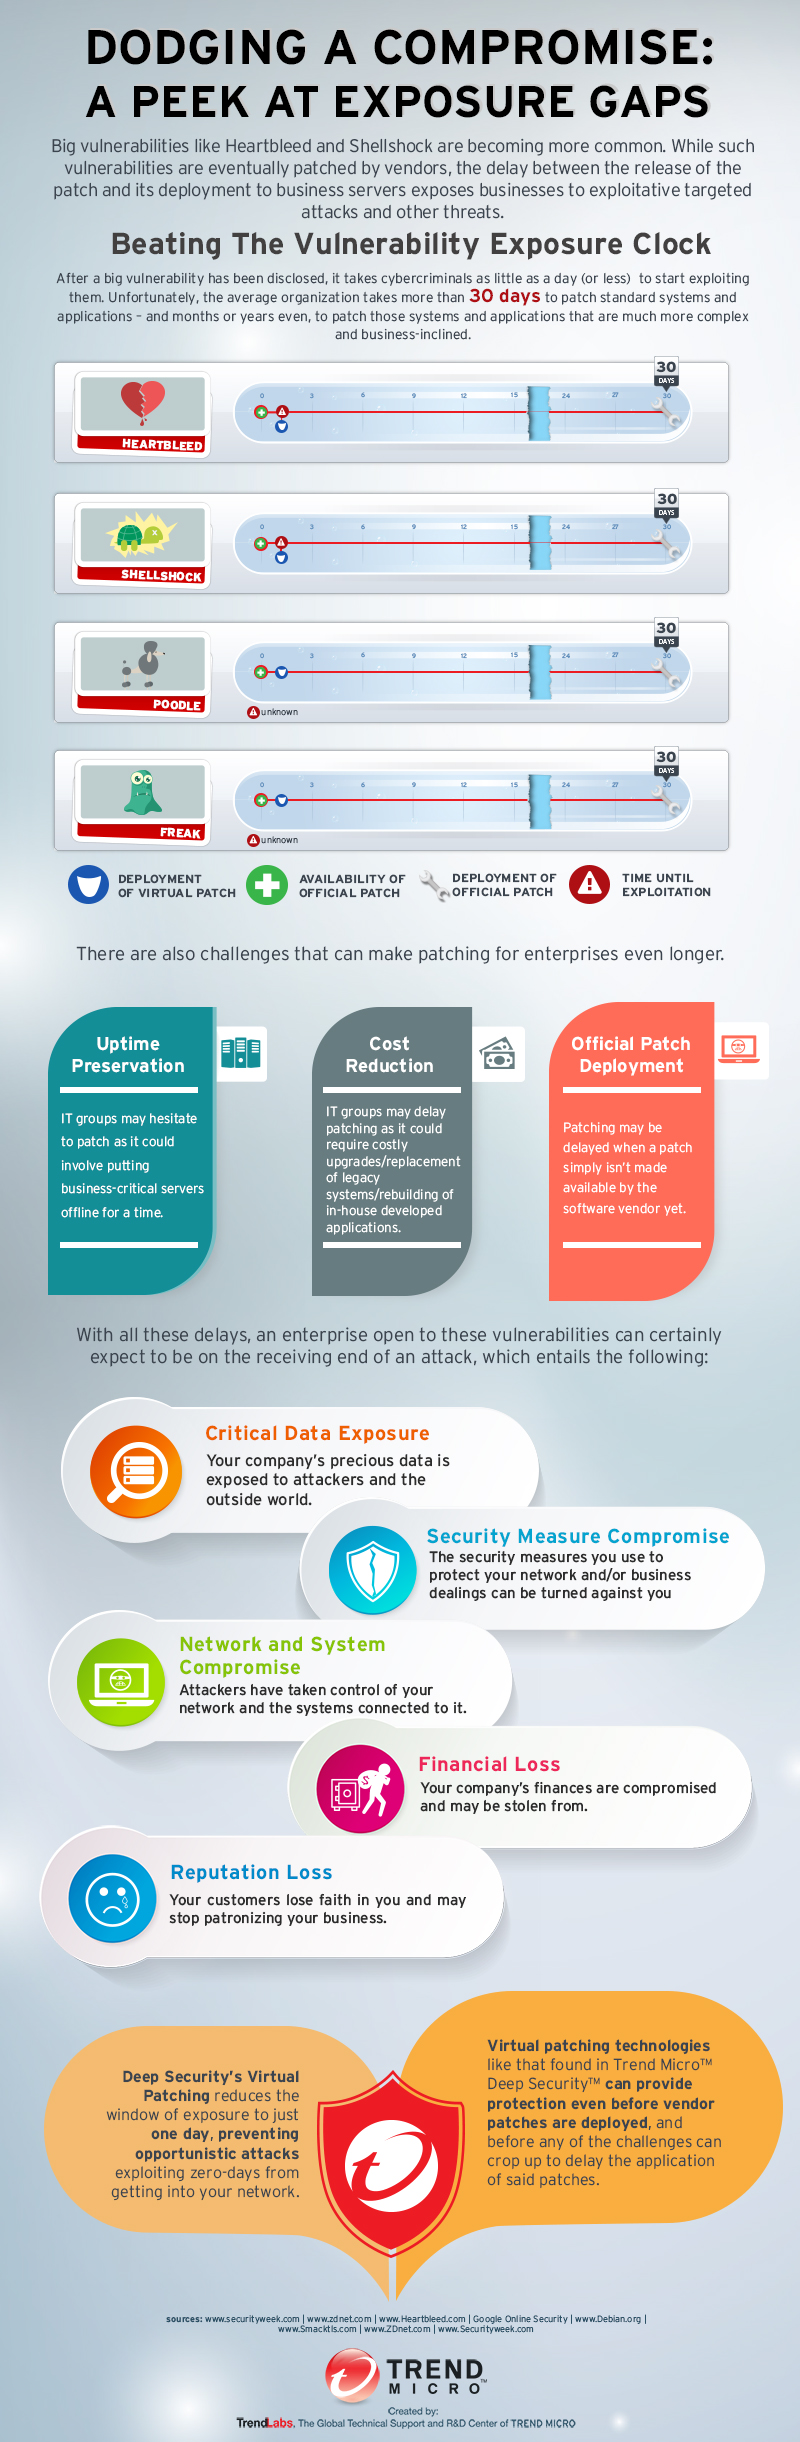 Virtual Patching TrendLabs Infographic